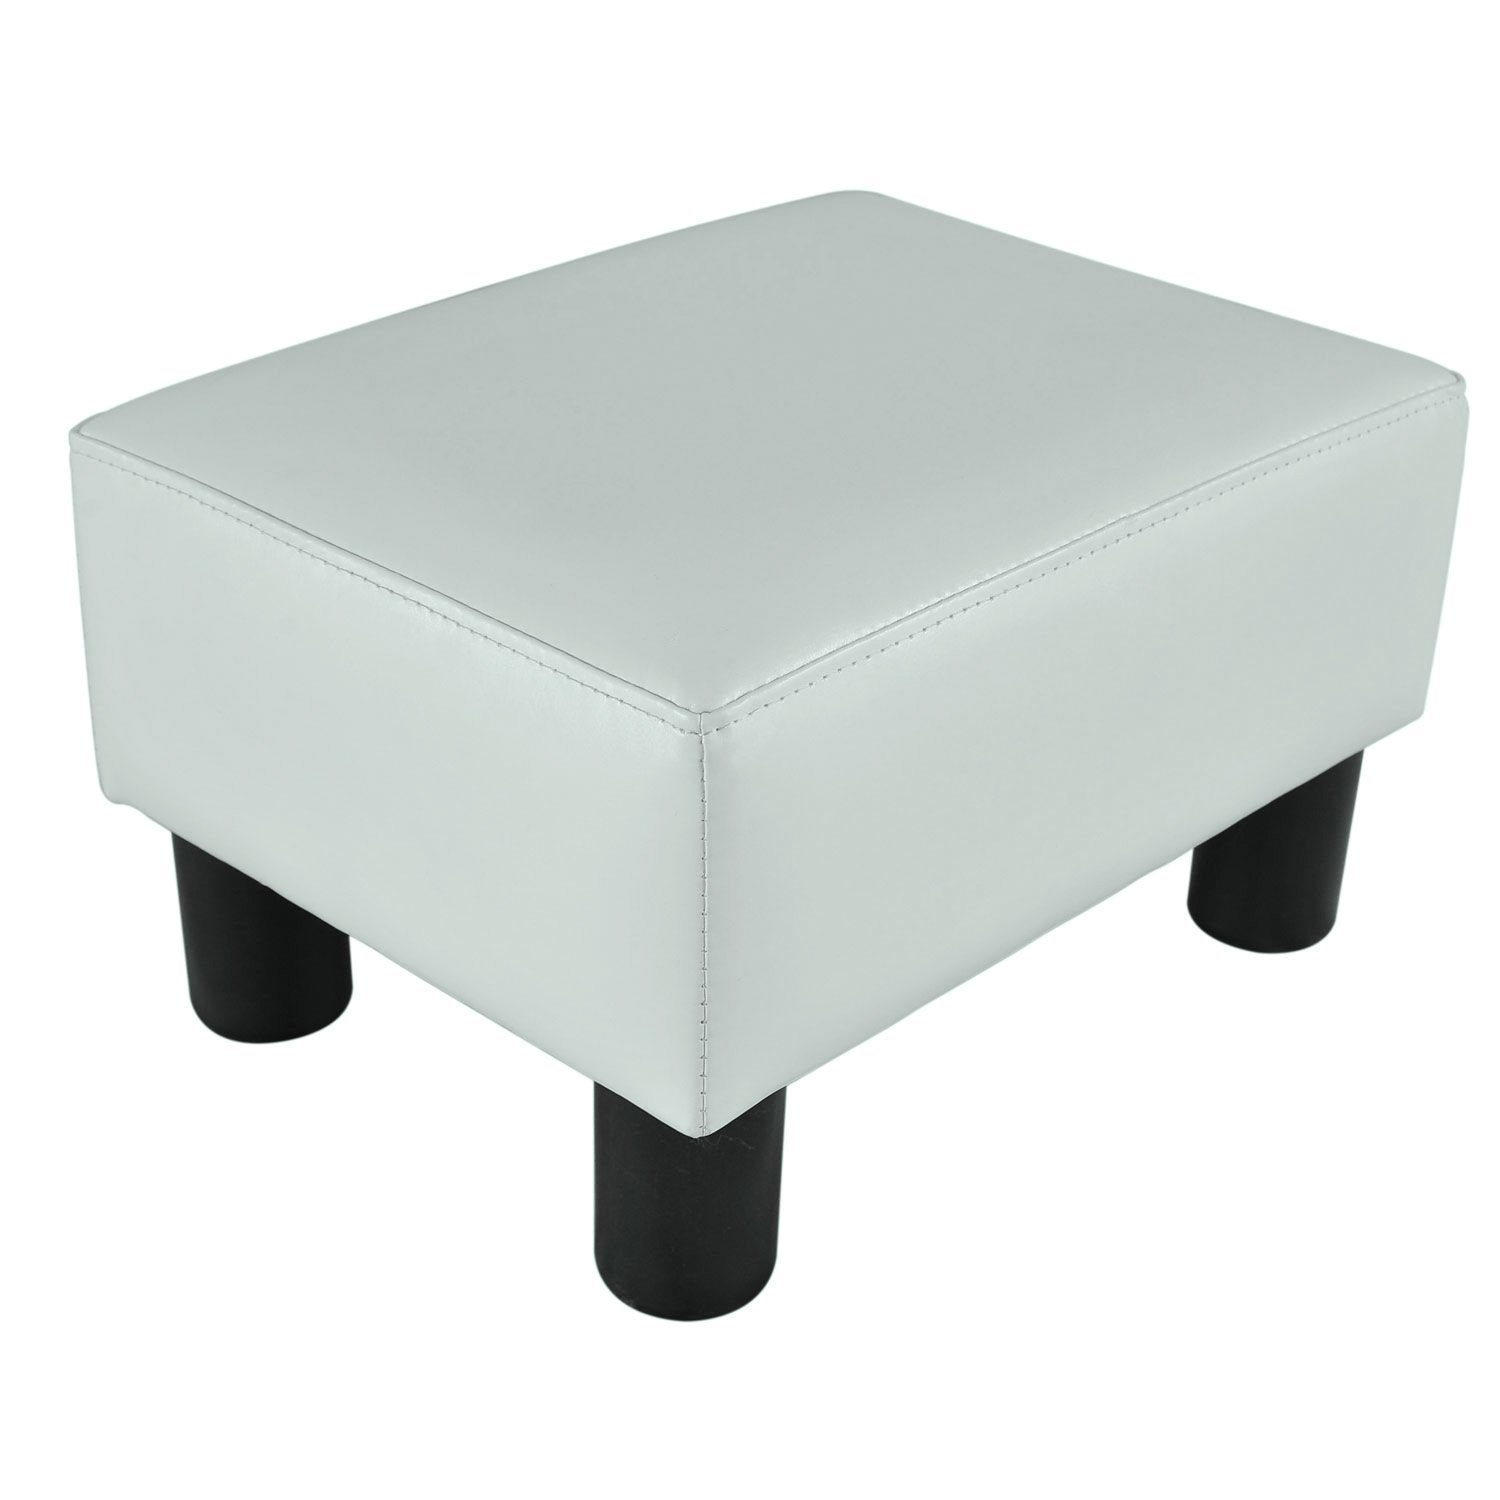 "HOMCOM Modern 15"" Rectangular Faux Leather Ottoman Footrest - Bright White"